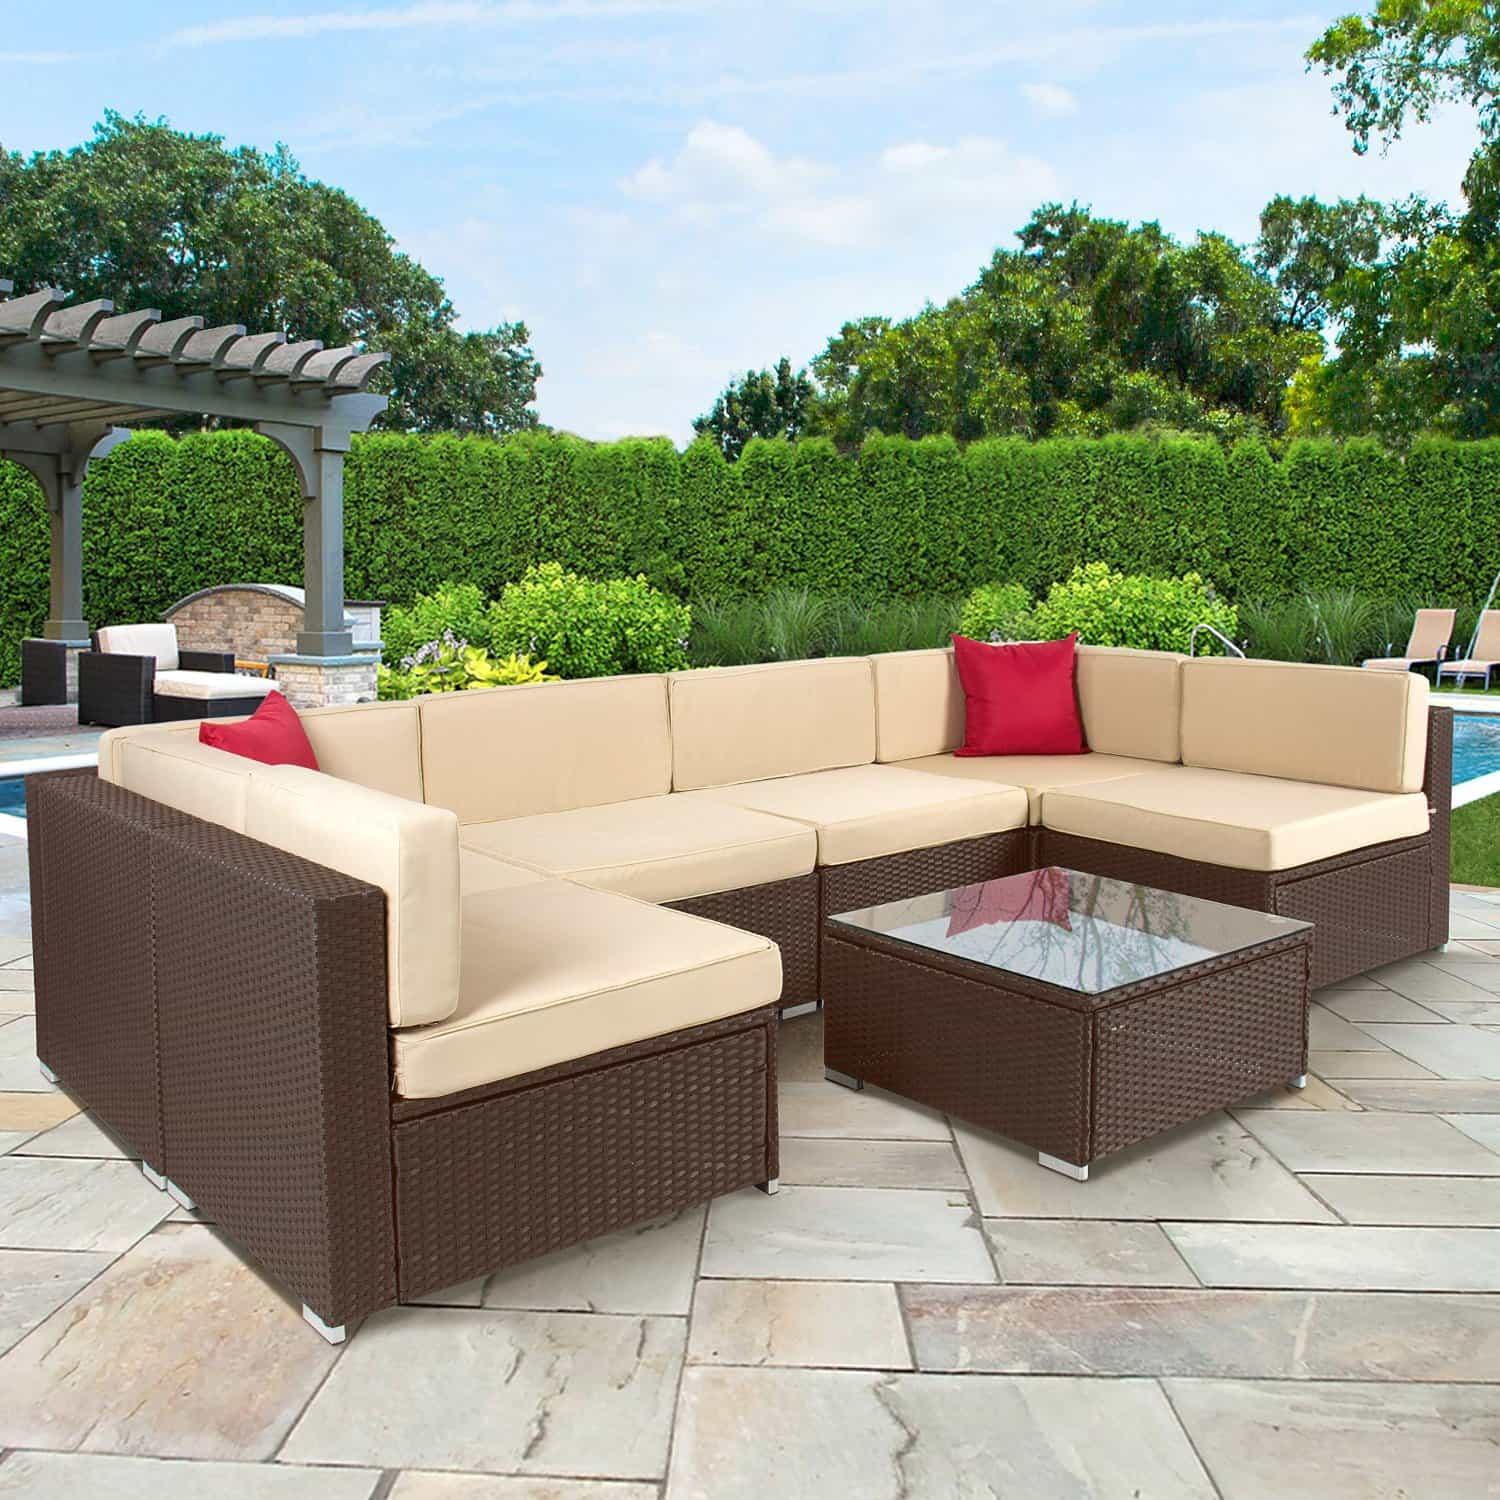 Low maintenance landscaping ideas for Low maintenance outdoor furniture